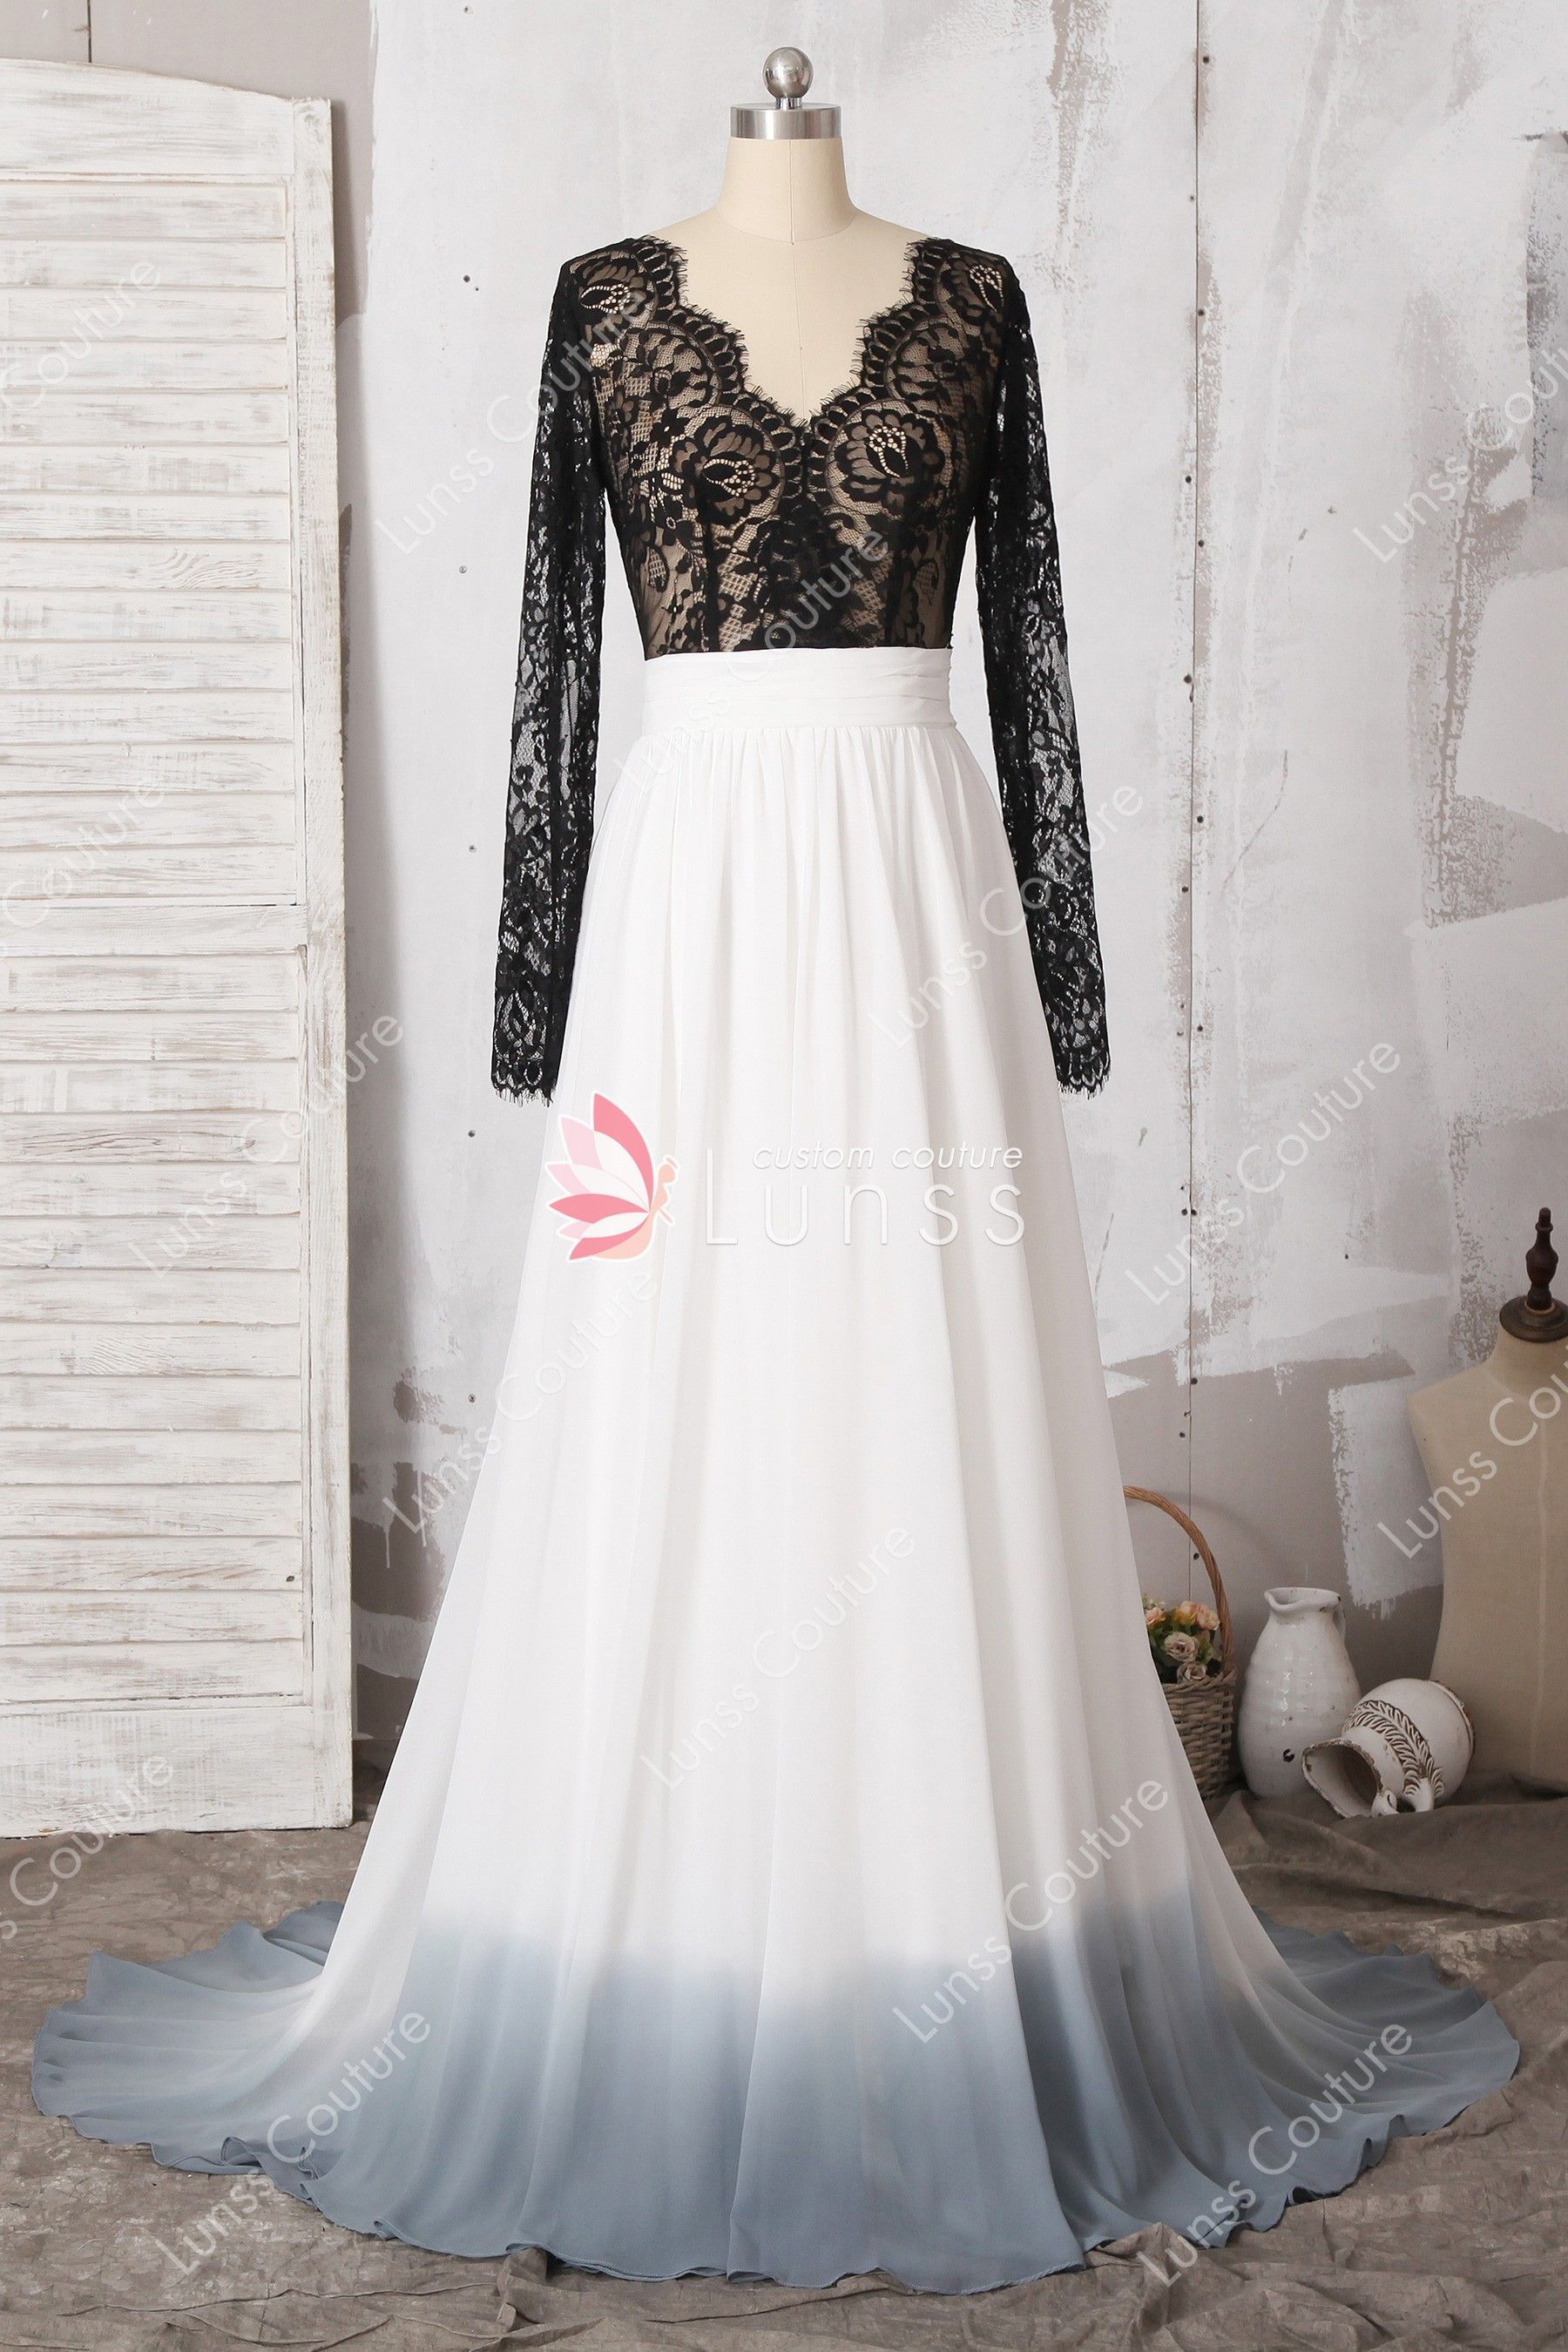 939afc3a33 The illusion black lace bodice features long sleeves, scalloped eyelash V  neckline. The white